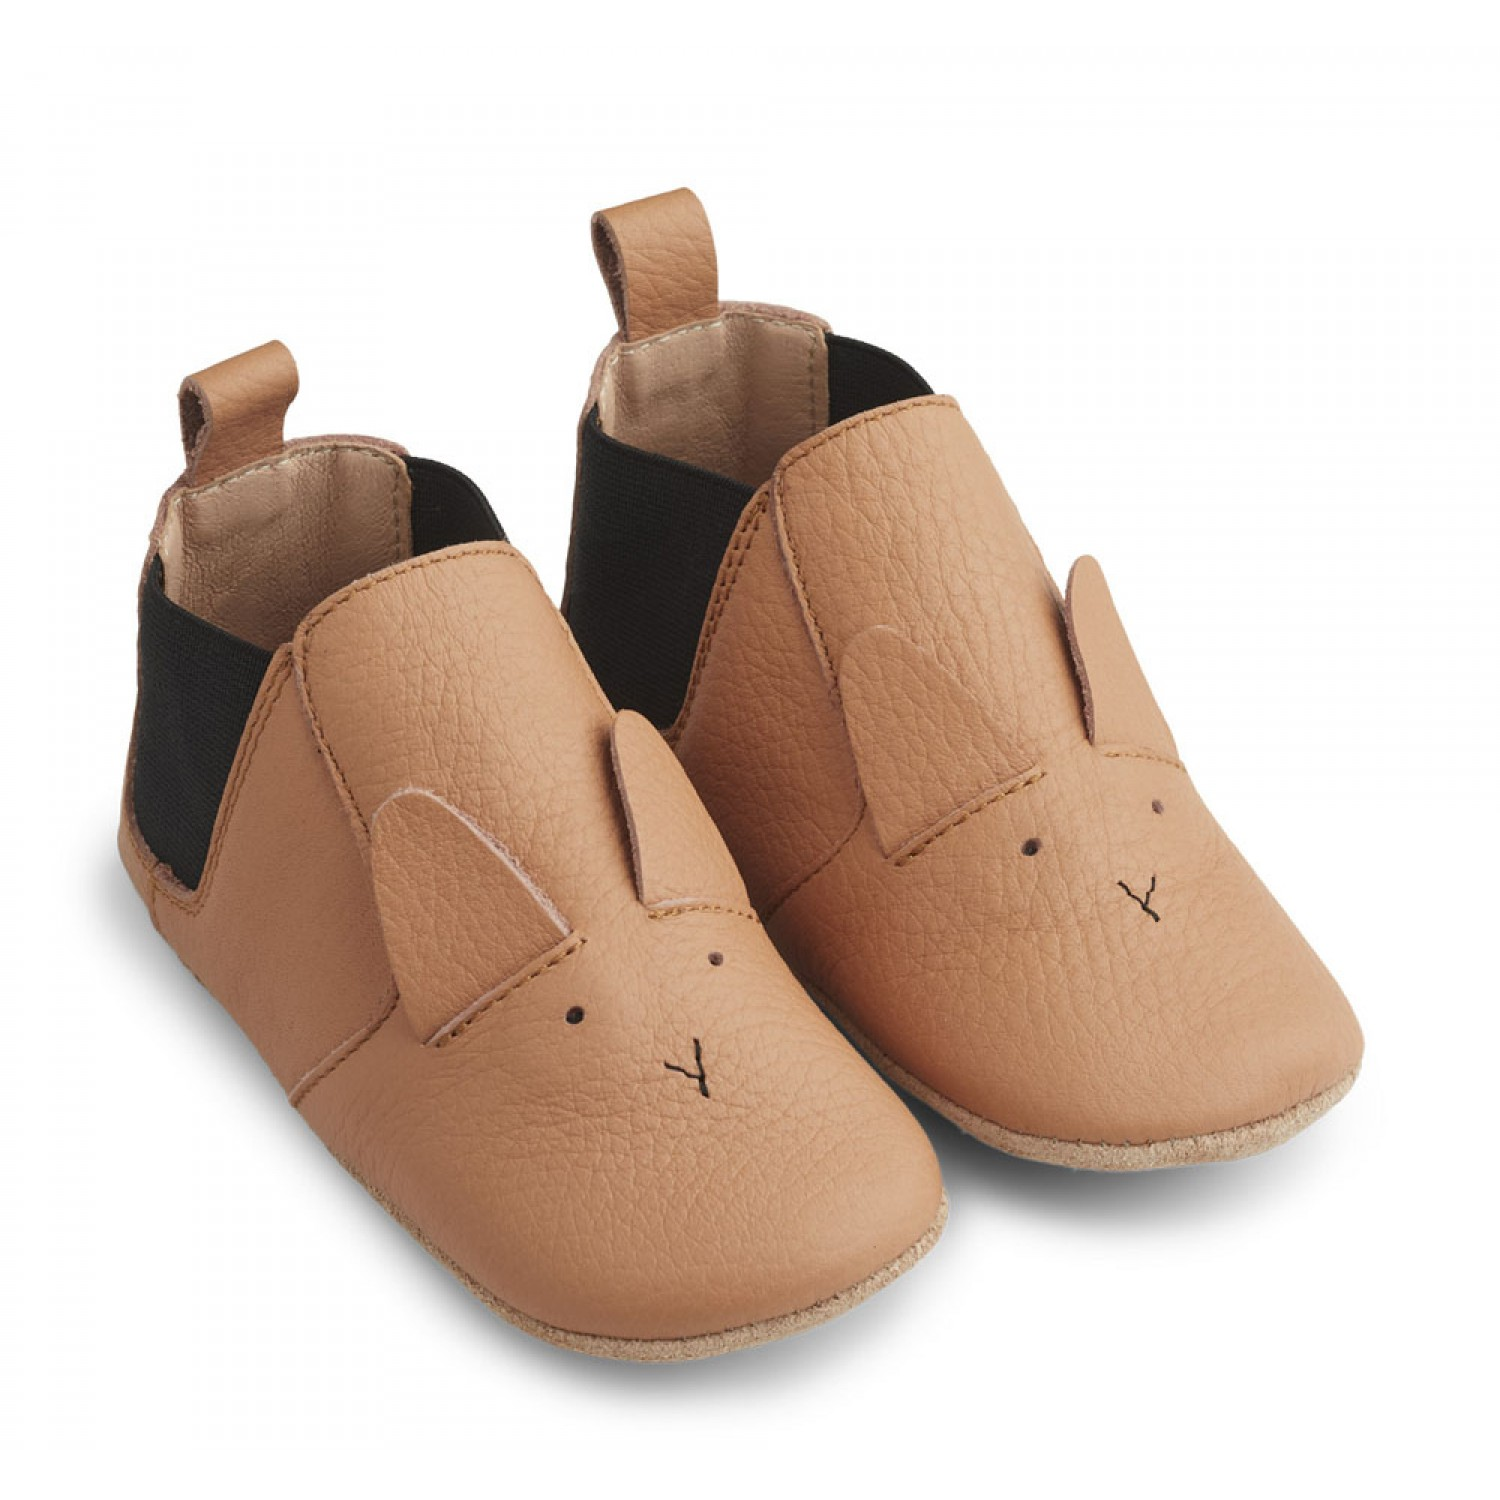 Edith Leather Slippers | Rabbit tuscany rose